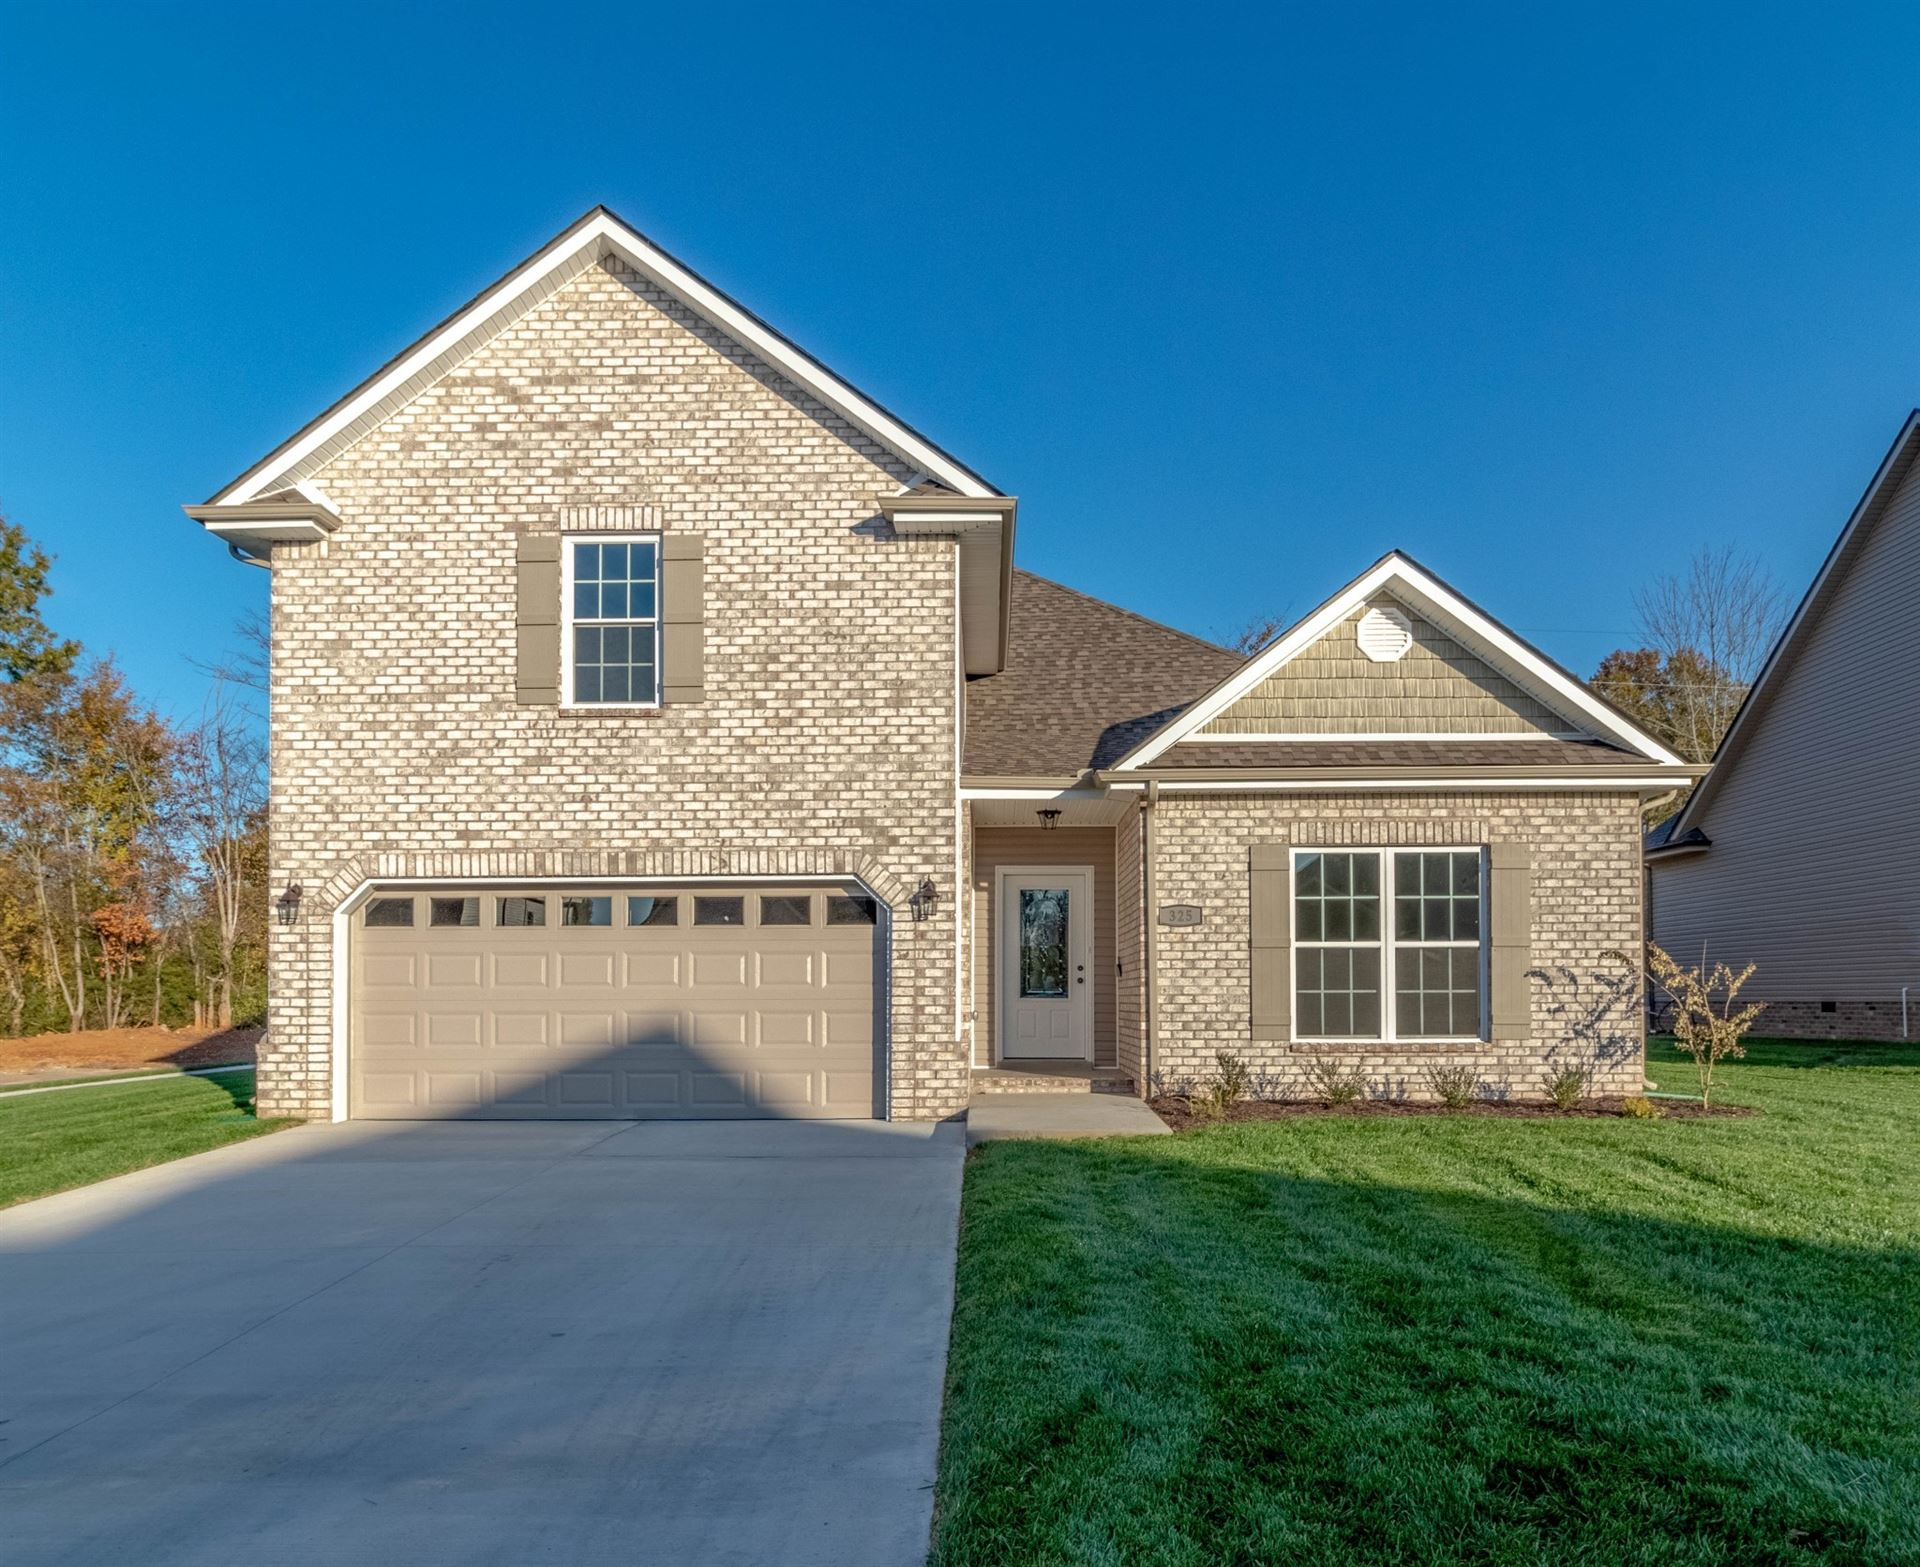 341 Chase Dr, Clarksville, TN 37043 - MLS#: 2162792